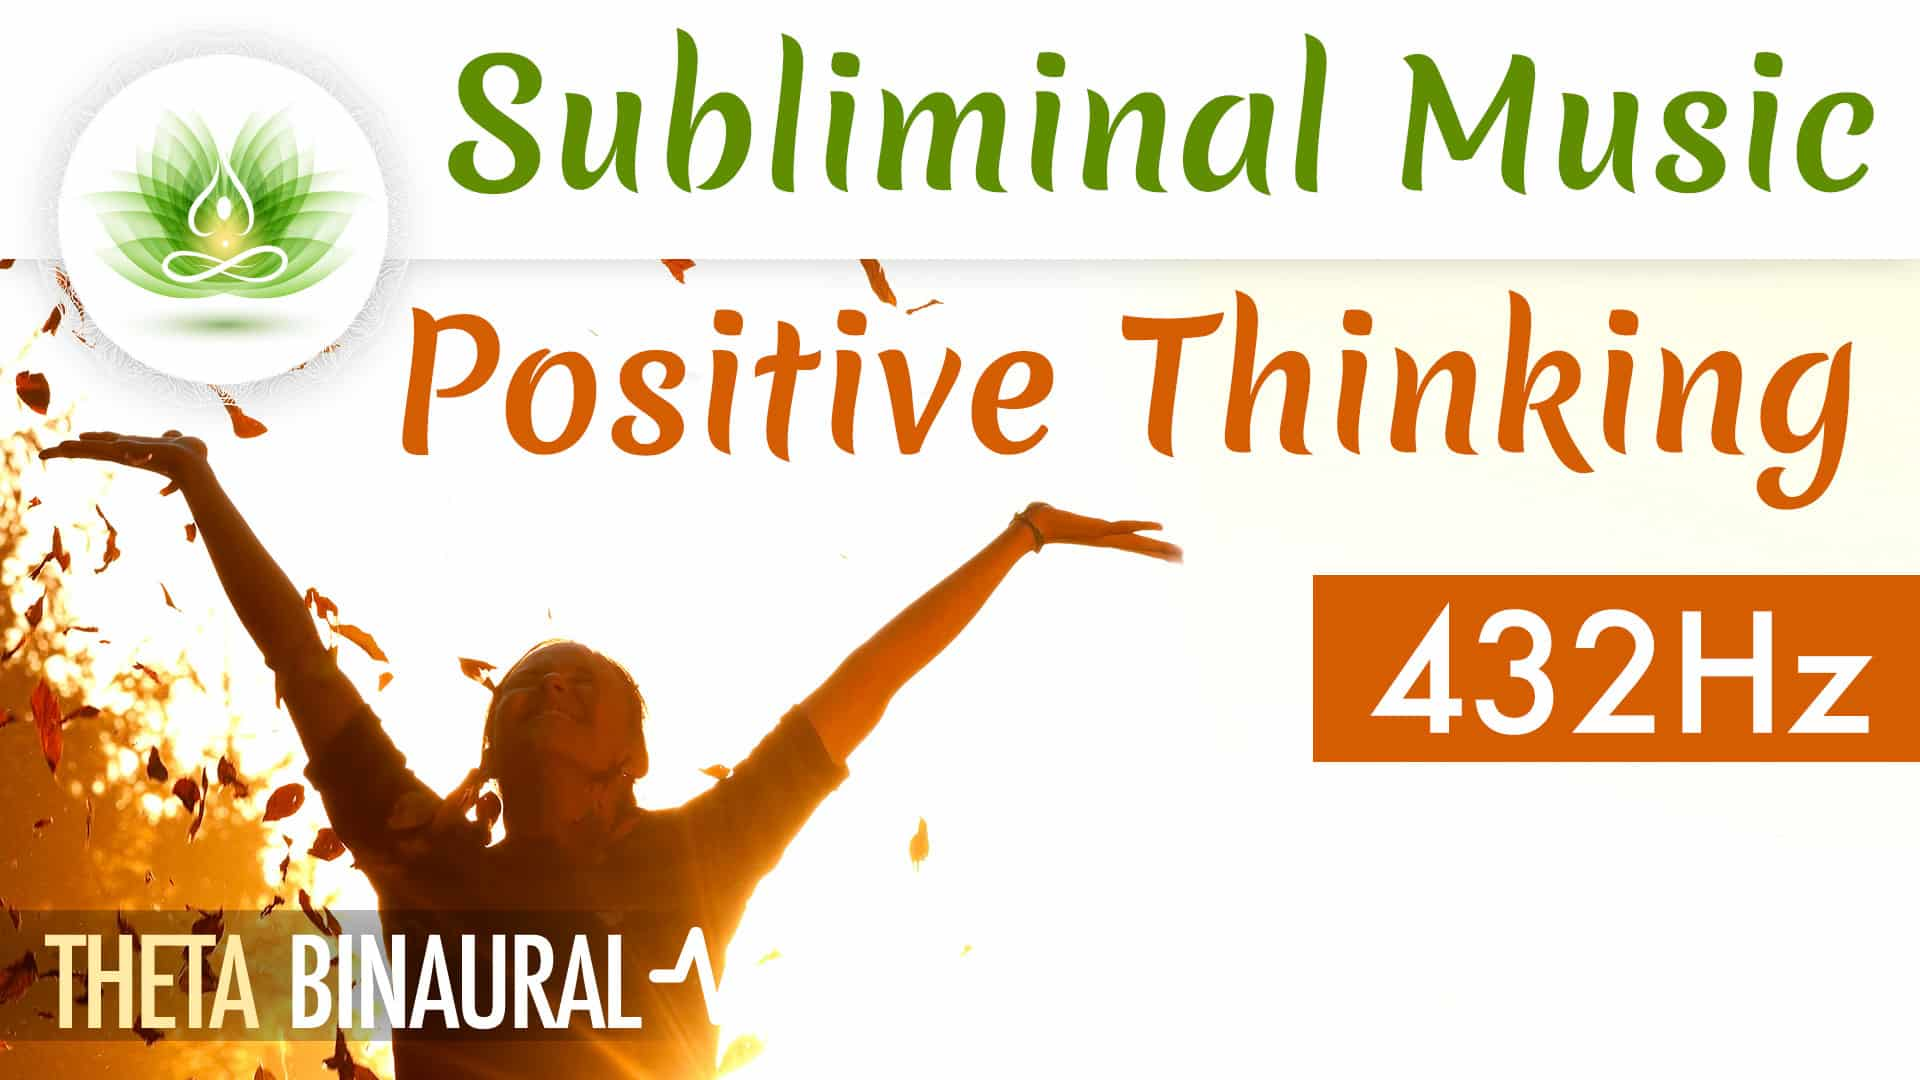 Subliminal Music - Positive Thinking